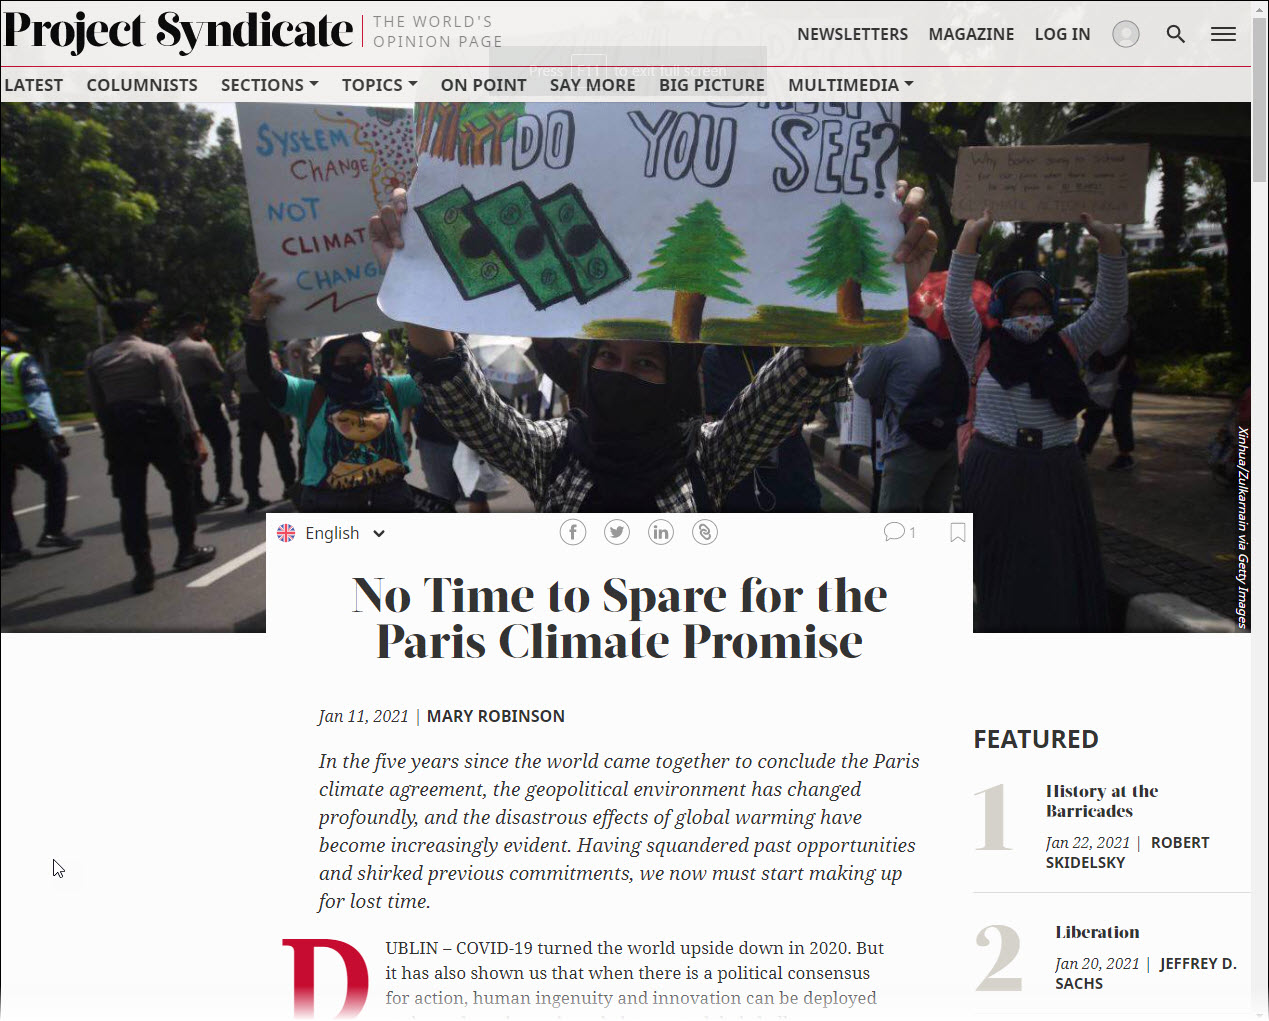 """Project Syndicate piece by Mary Robinson: """"No Time to Spare for the Paris Climate Promise"""" with accompanying photo of protestors with signs."""